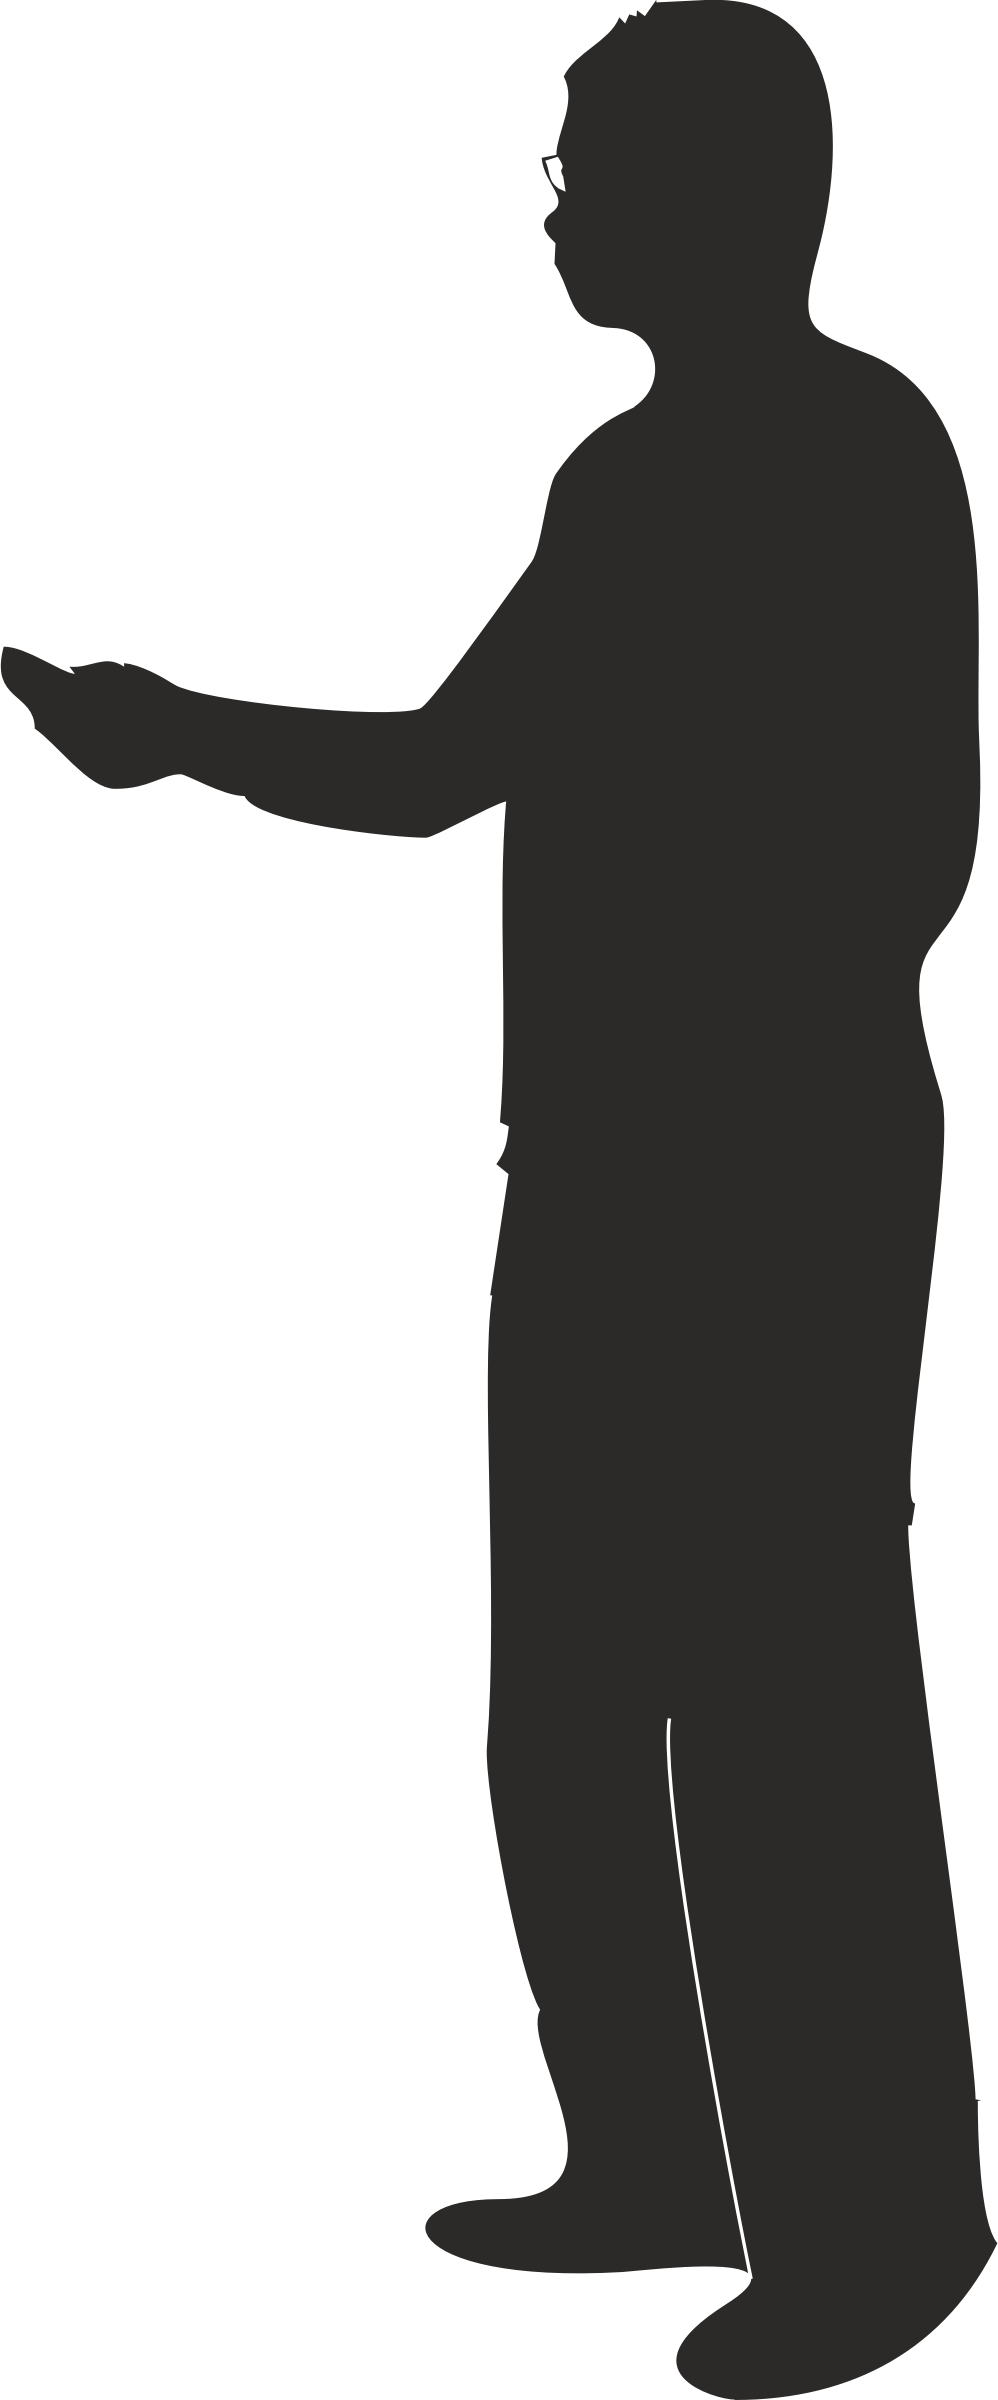 Male silhouette presenting or pointing by pnx